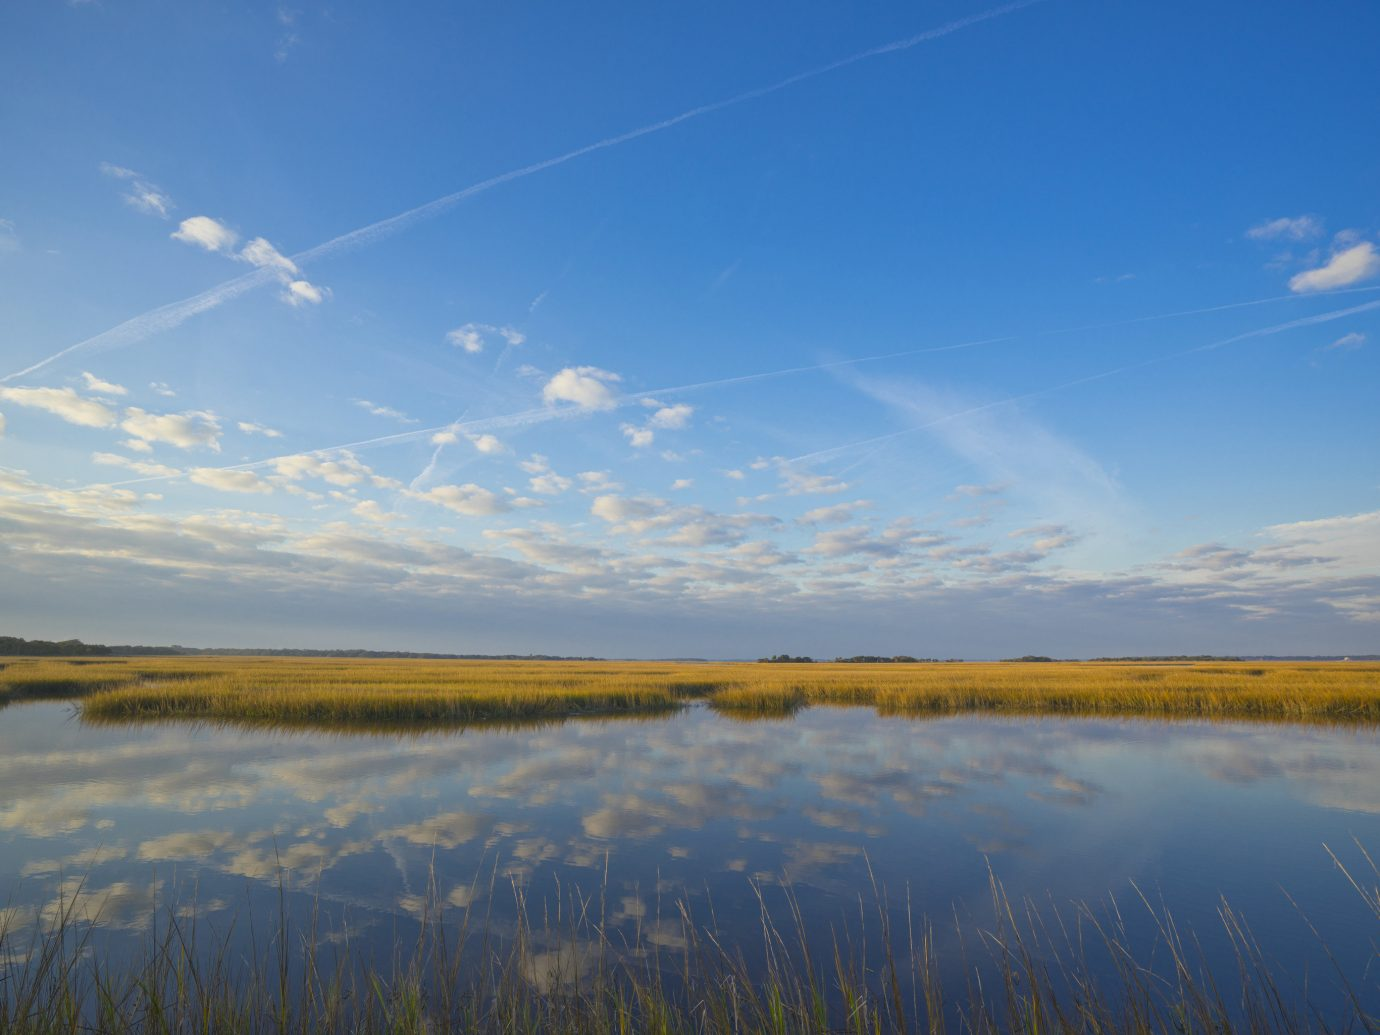 Beach sky outdoor habitat water Nature horizon natural environment atmospheric phenomenon reflection grassland cloud plain ecosystem marsh wetland prairie Lake shore morning dawn mountain sunrise field River steppe loch grass family landscape meadow sunlight reservoir dusk tundra Sea pond clouds land day